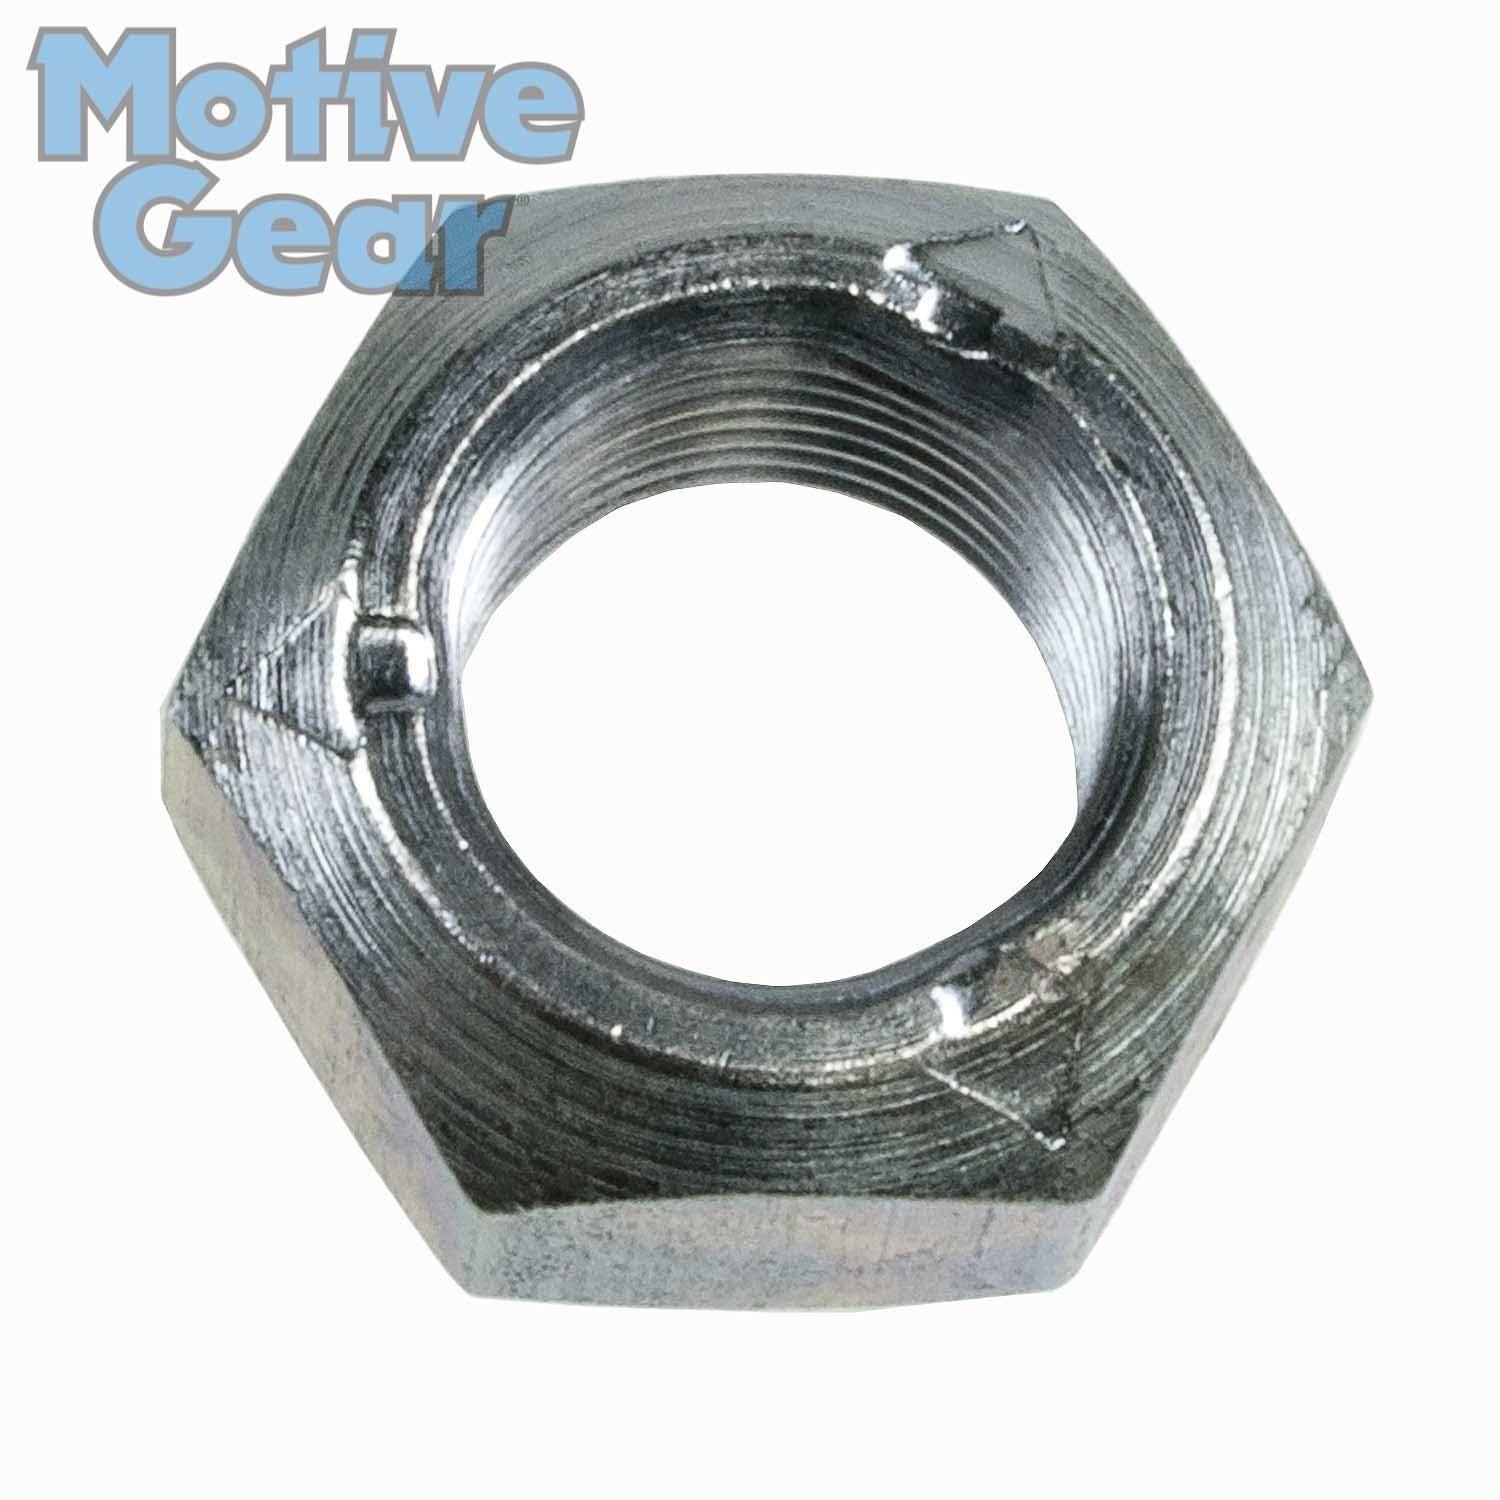 Motive Gear Performance Differential 30185 Motive Gear-Differential Pinion Nut Differential Pinion Nut